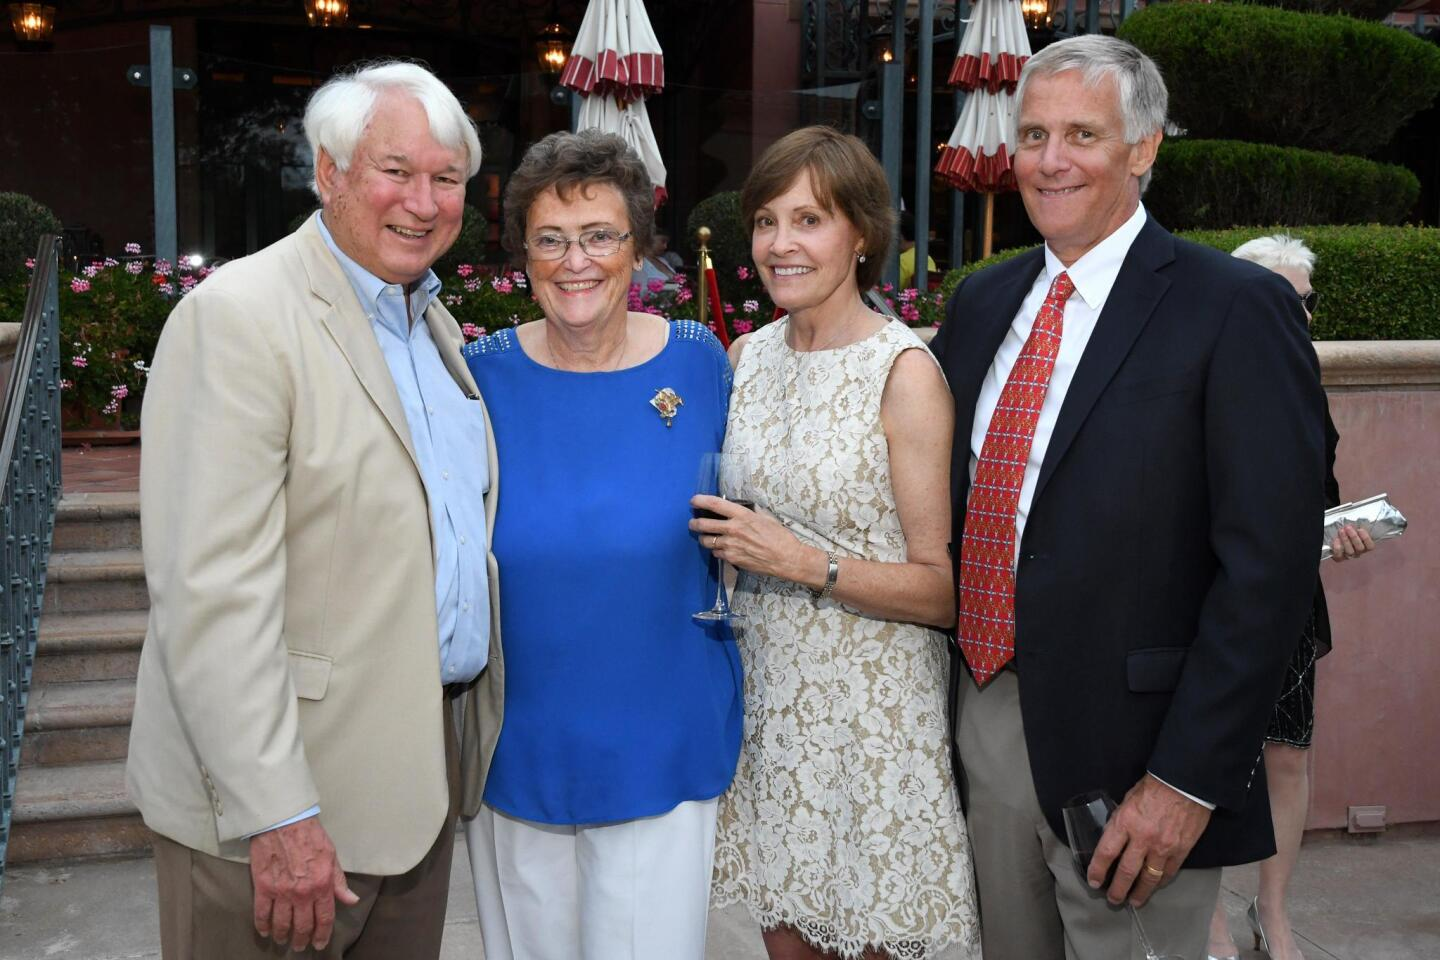 Paul and Cathy Schroeder, Jan and Larry Duitsman